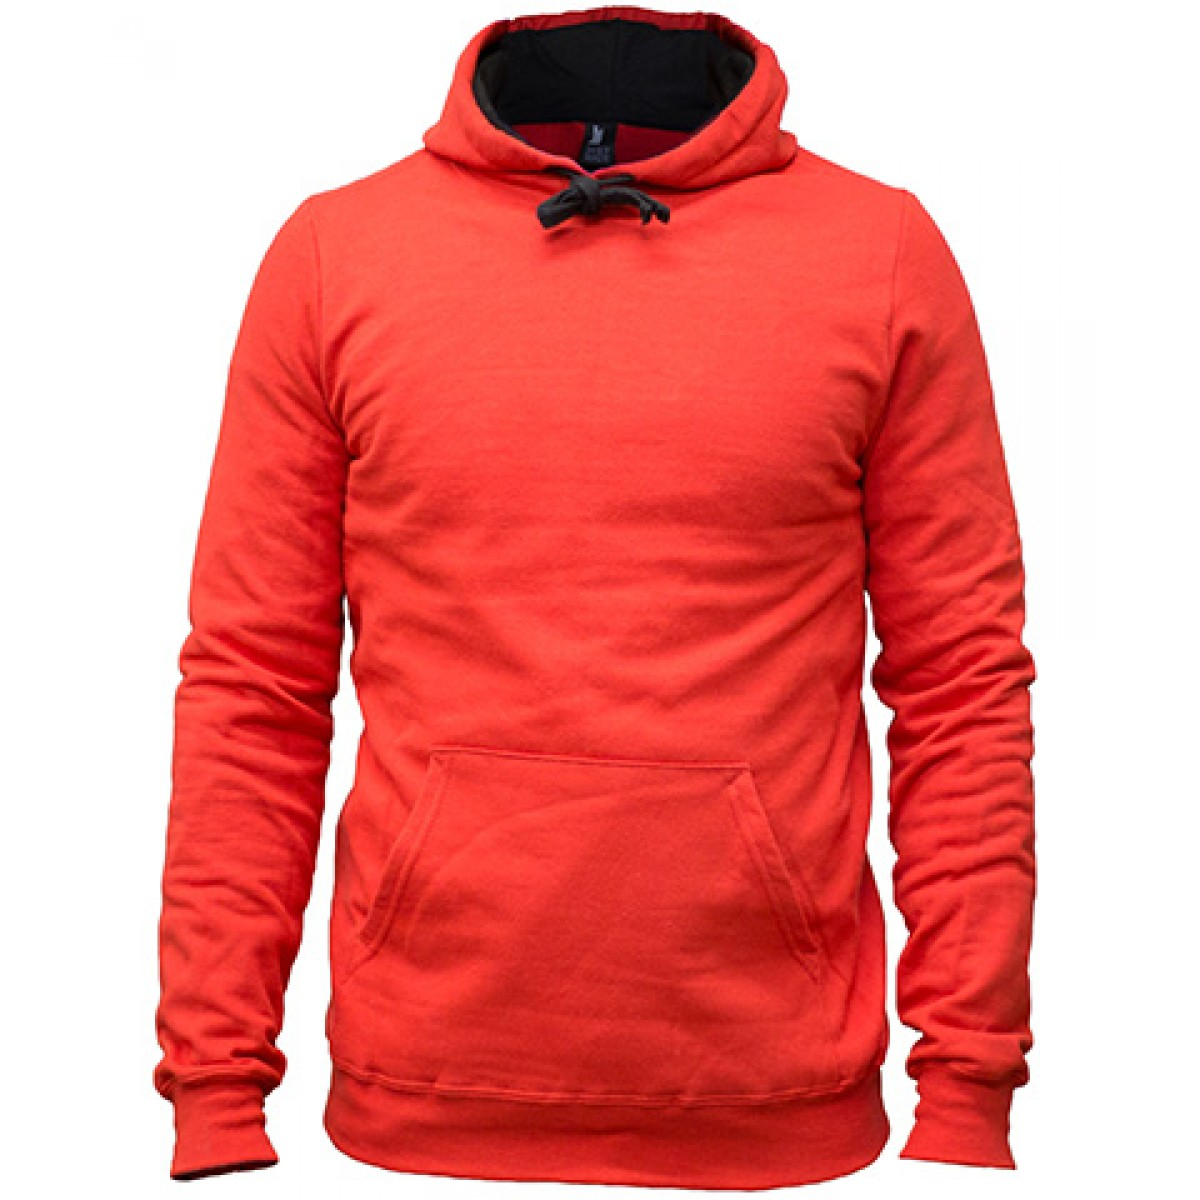 Concert Fleece Hoodie-Red-XL